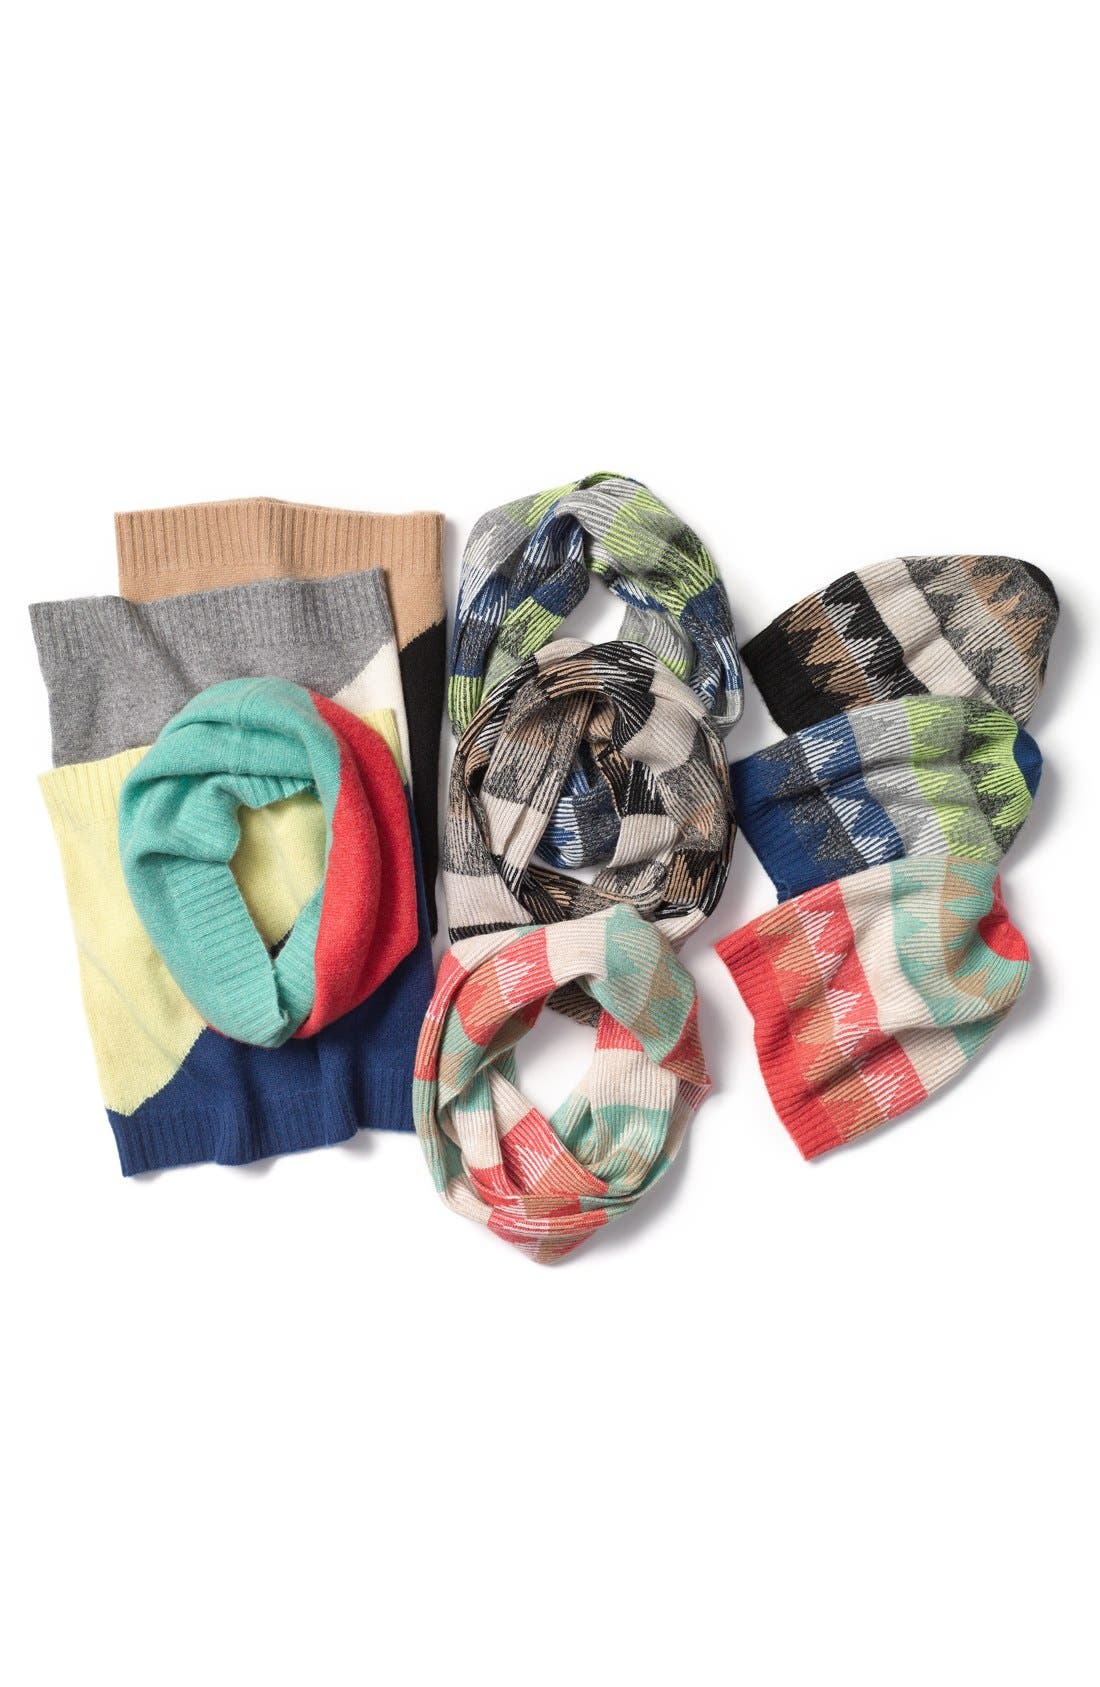 Alternate Image 3  - Made of Me Cashmere Infinity Scarf